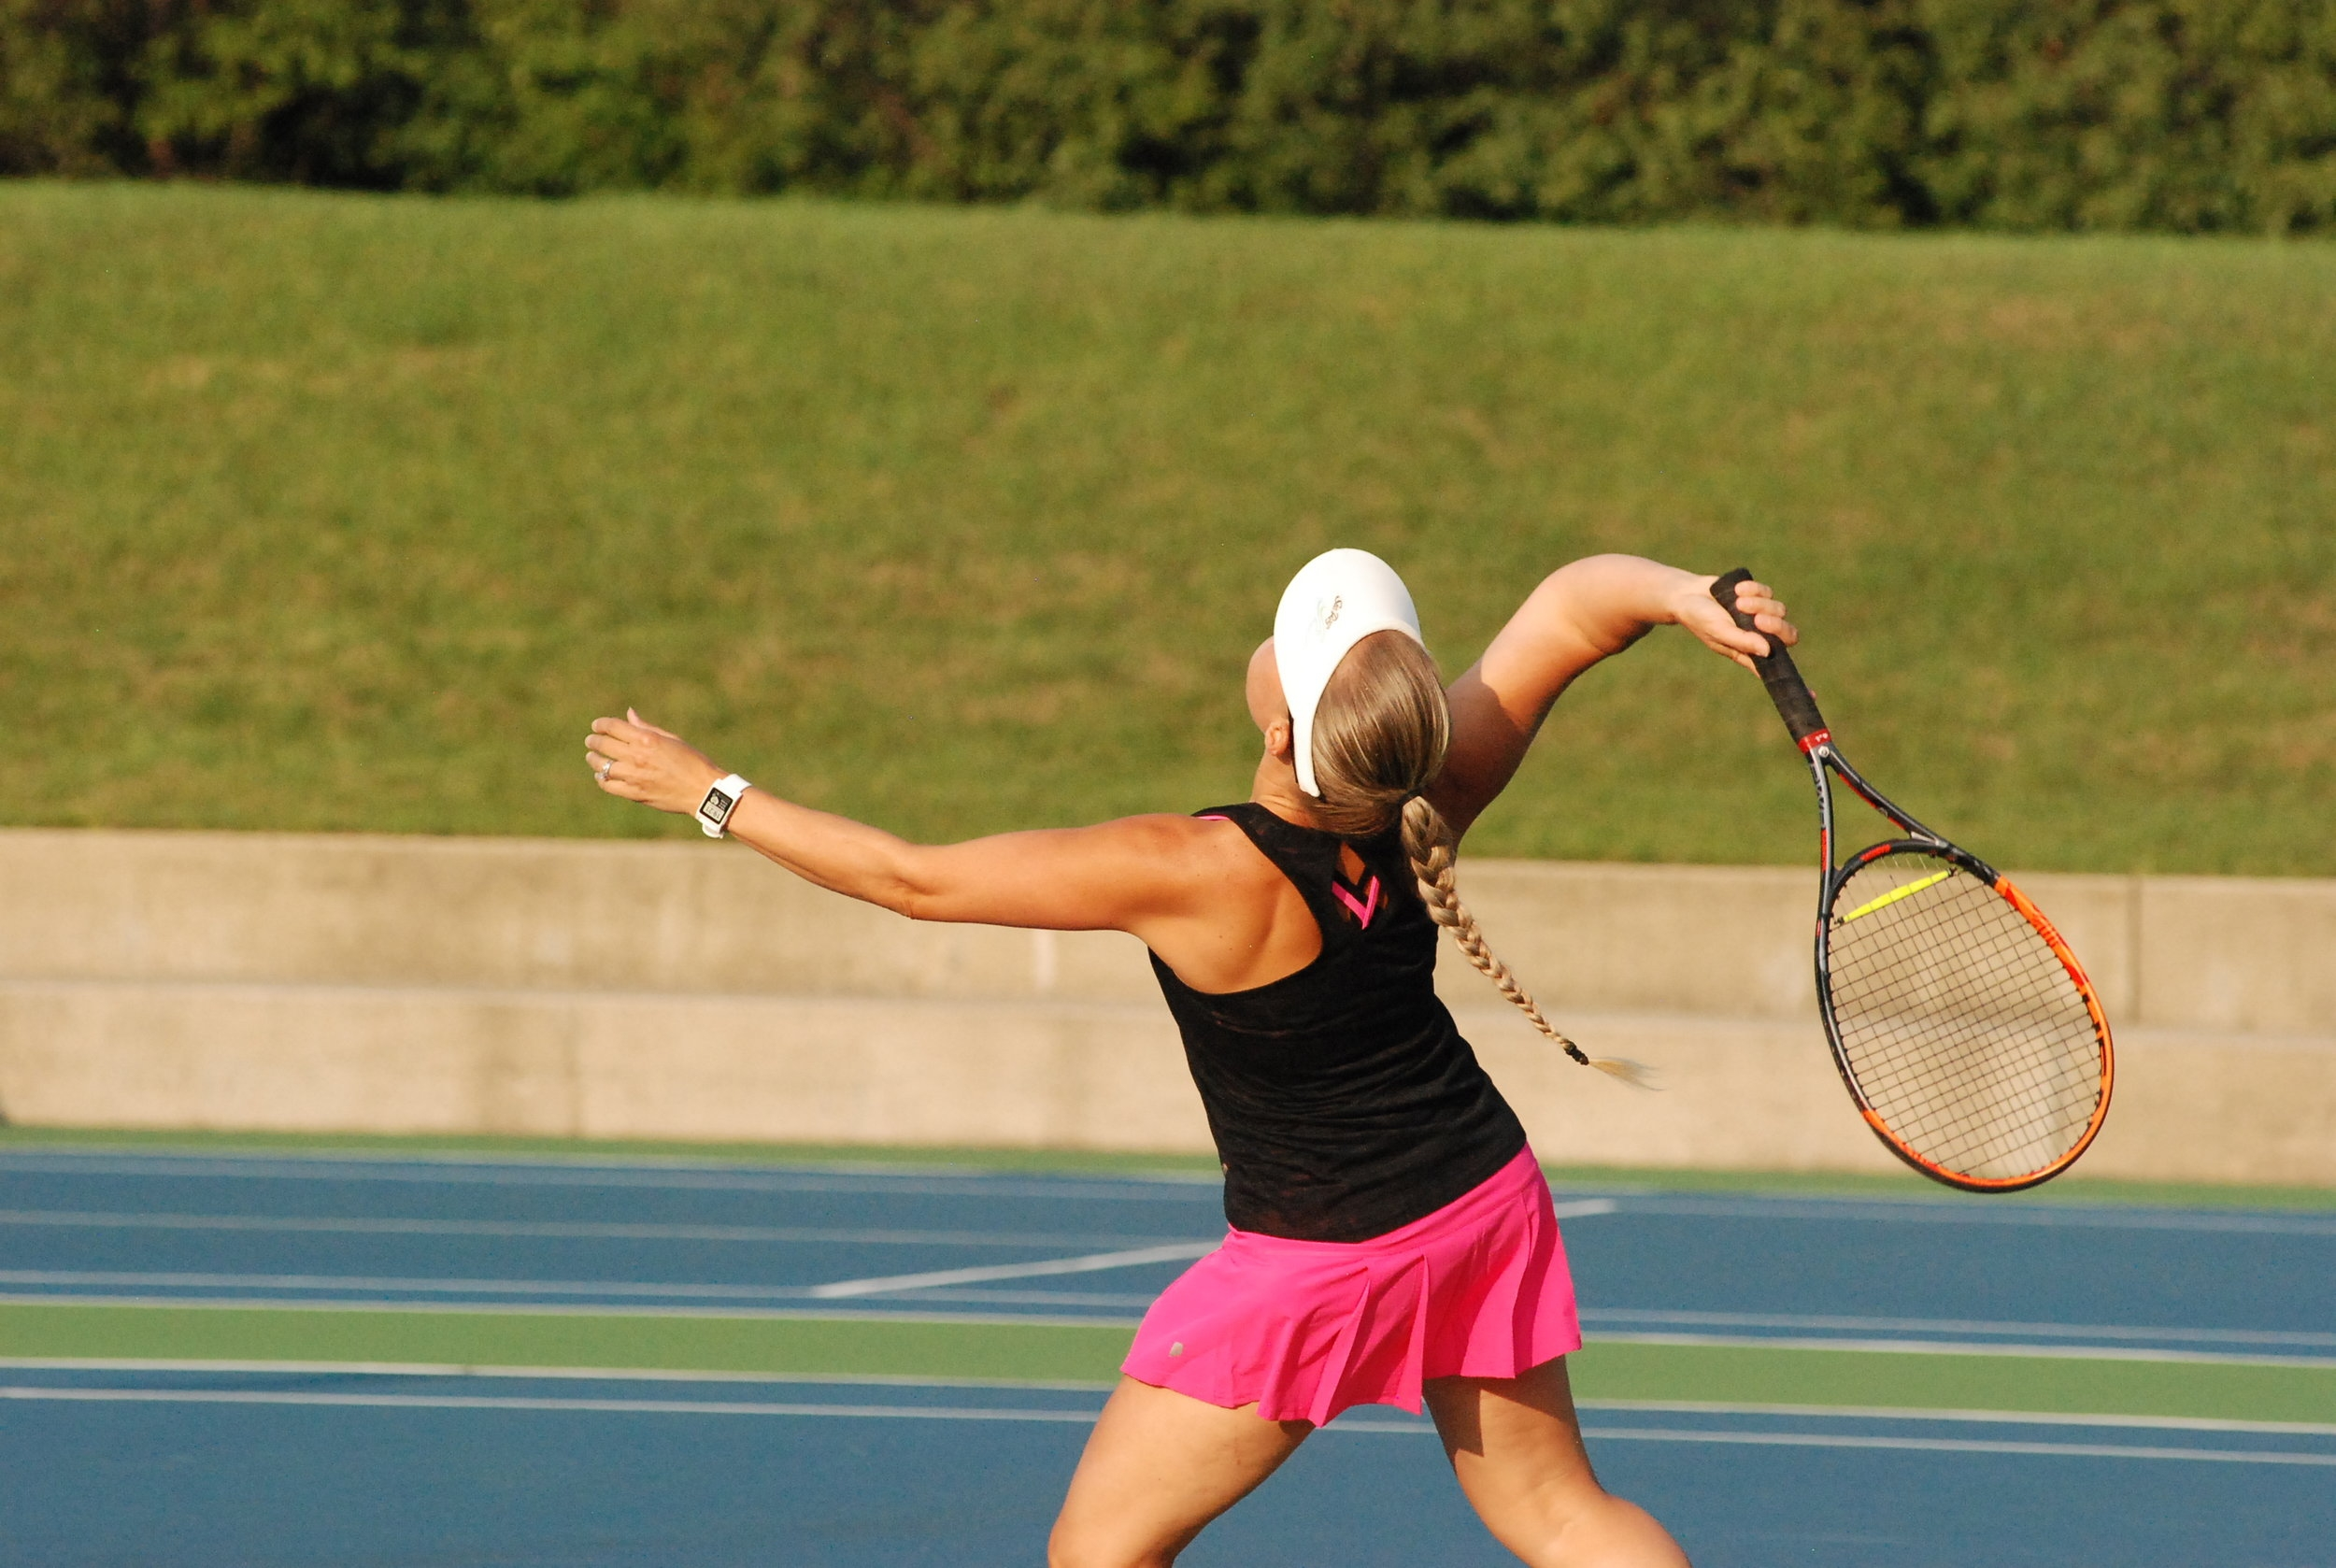 LEAGUES   Play to win! With men's, women's, mixed, singles and doubles leagues for all skill levels, leagues are the perfect way to have fun, socialize with fellow players and challenge yourself!   LEAGUE INFO